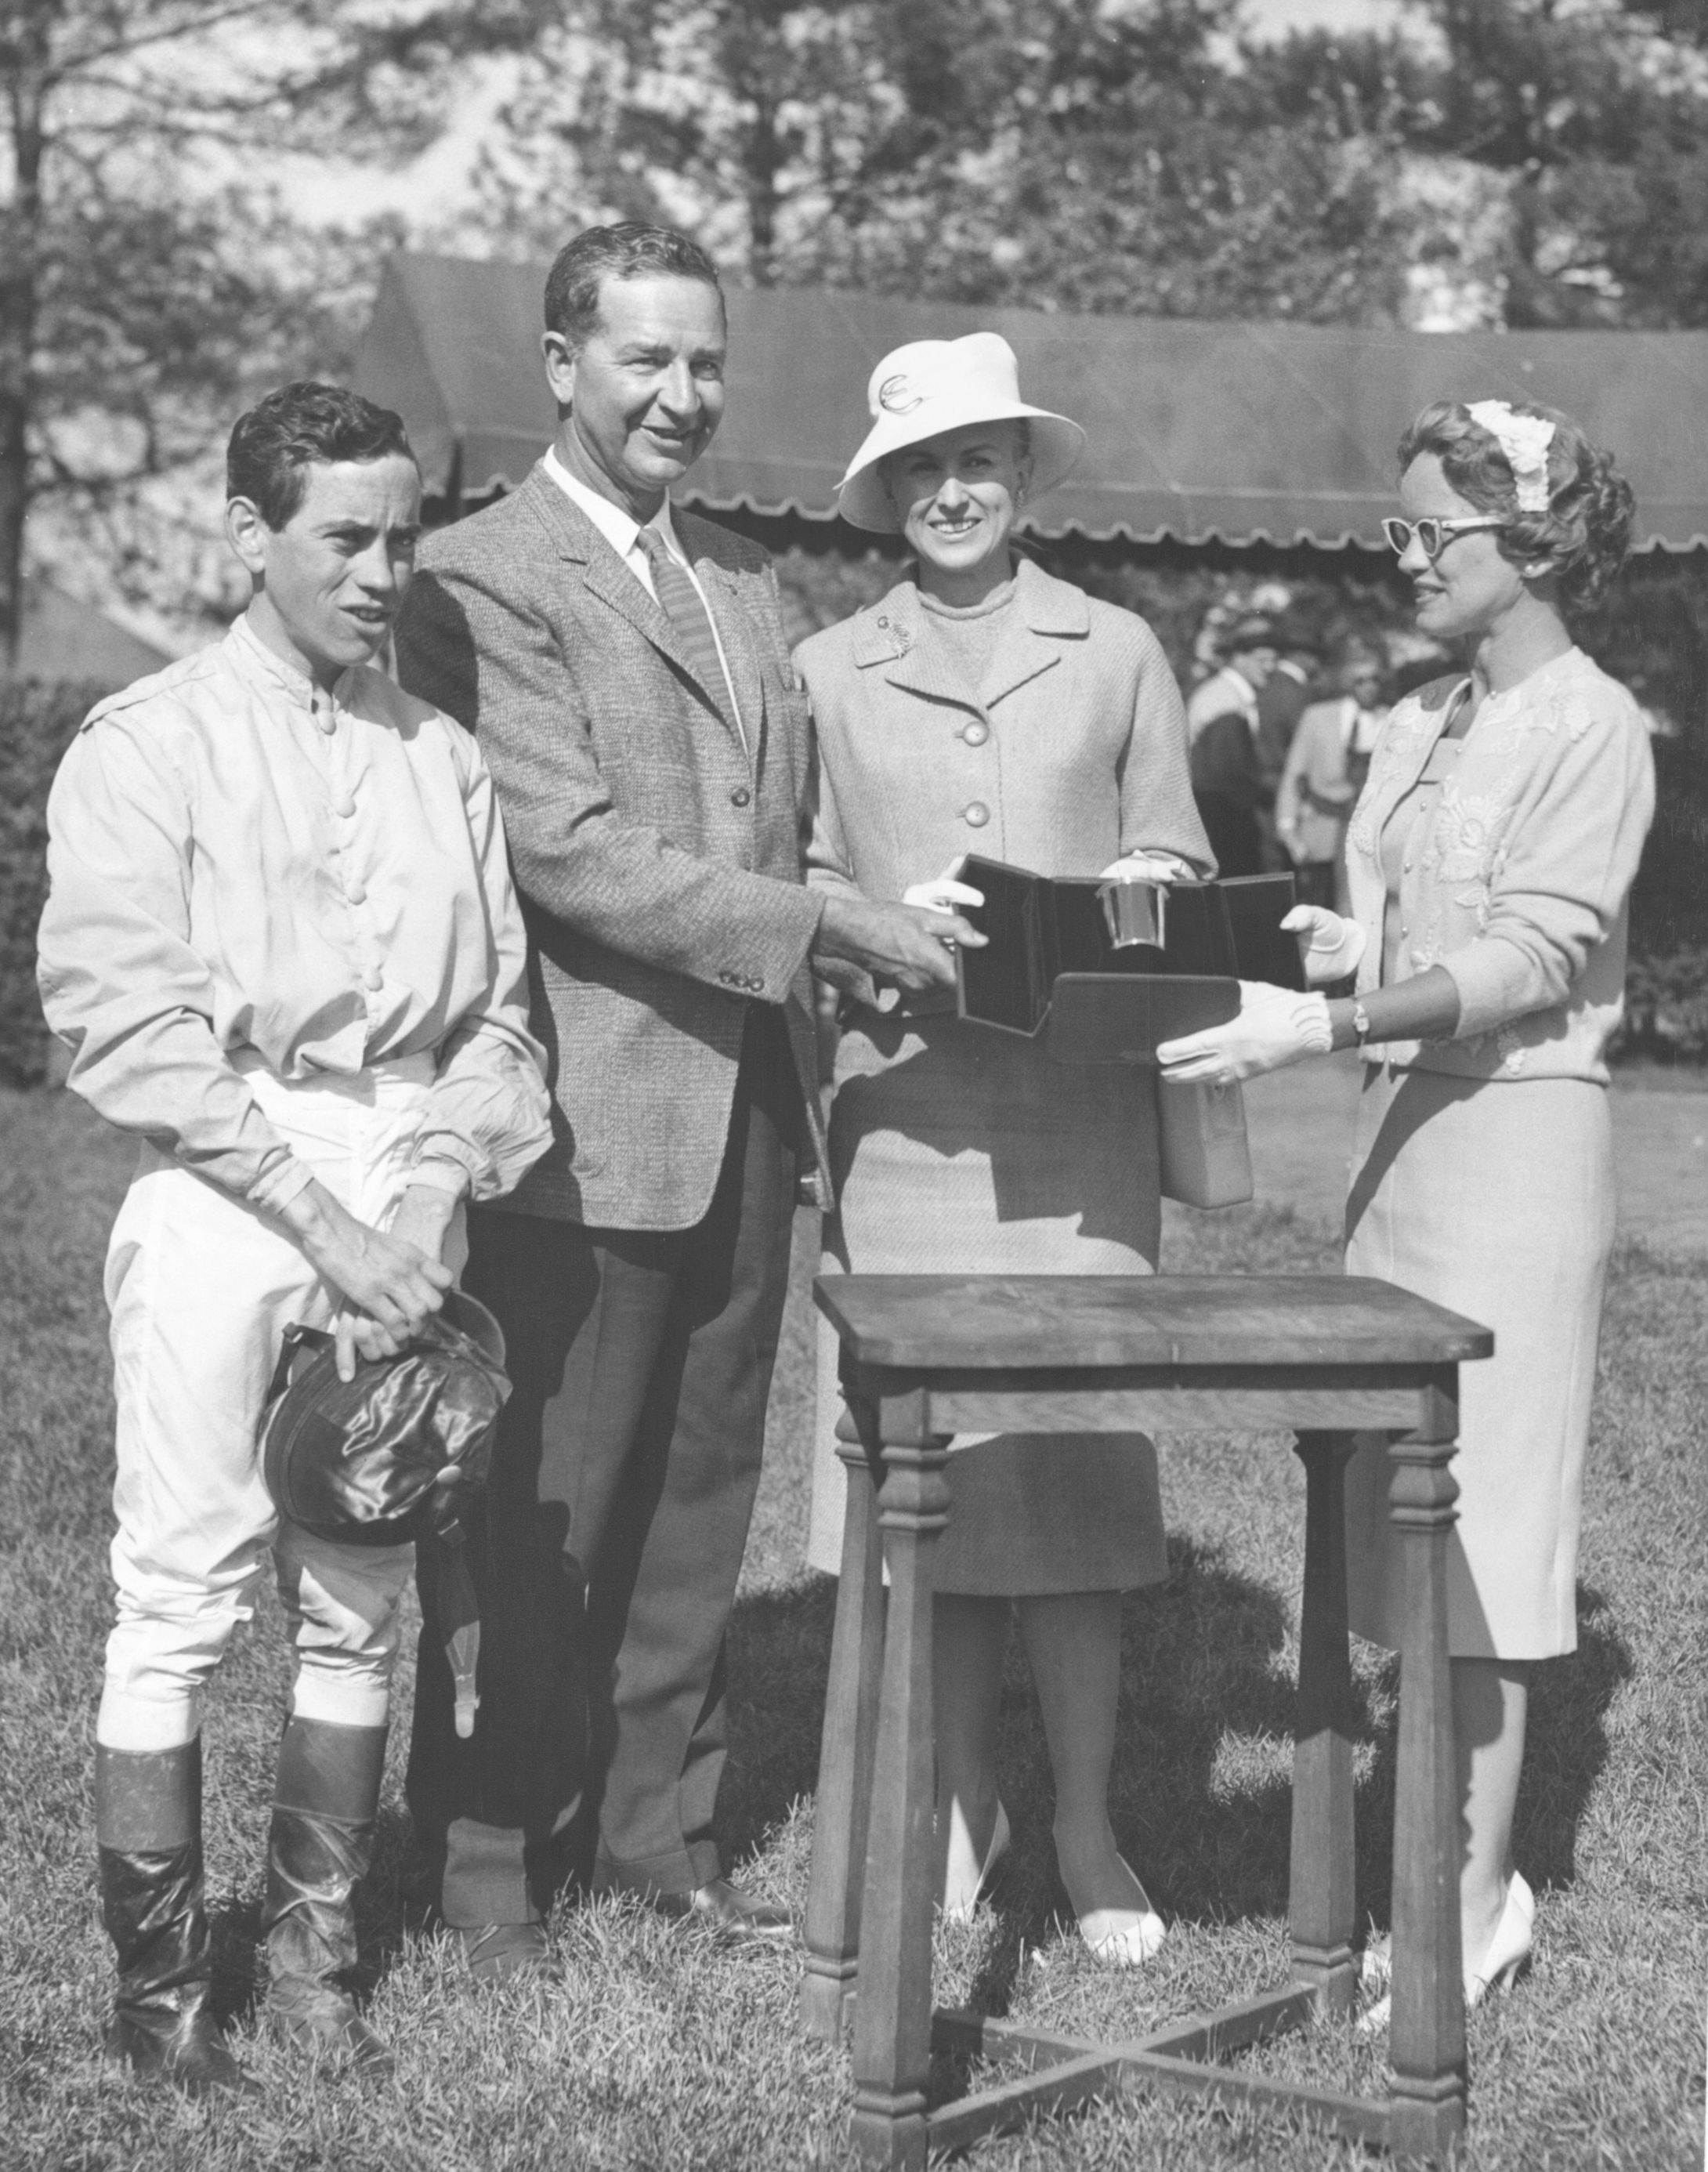 From left, John Rotz, C. V. Whitney, Marylou Whitney, and Mrs. Len Shouse III at Keeneland, 1960 Lafayette Stakes trophy presentation (Keeneland Library)